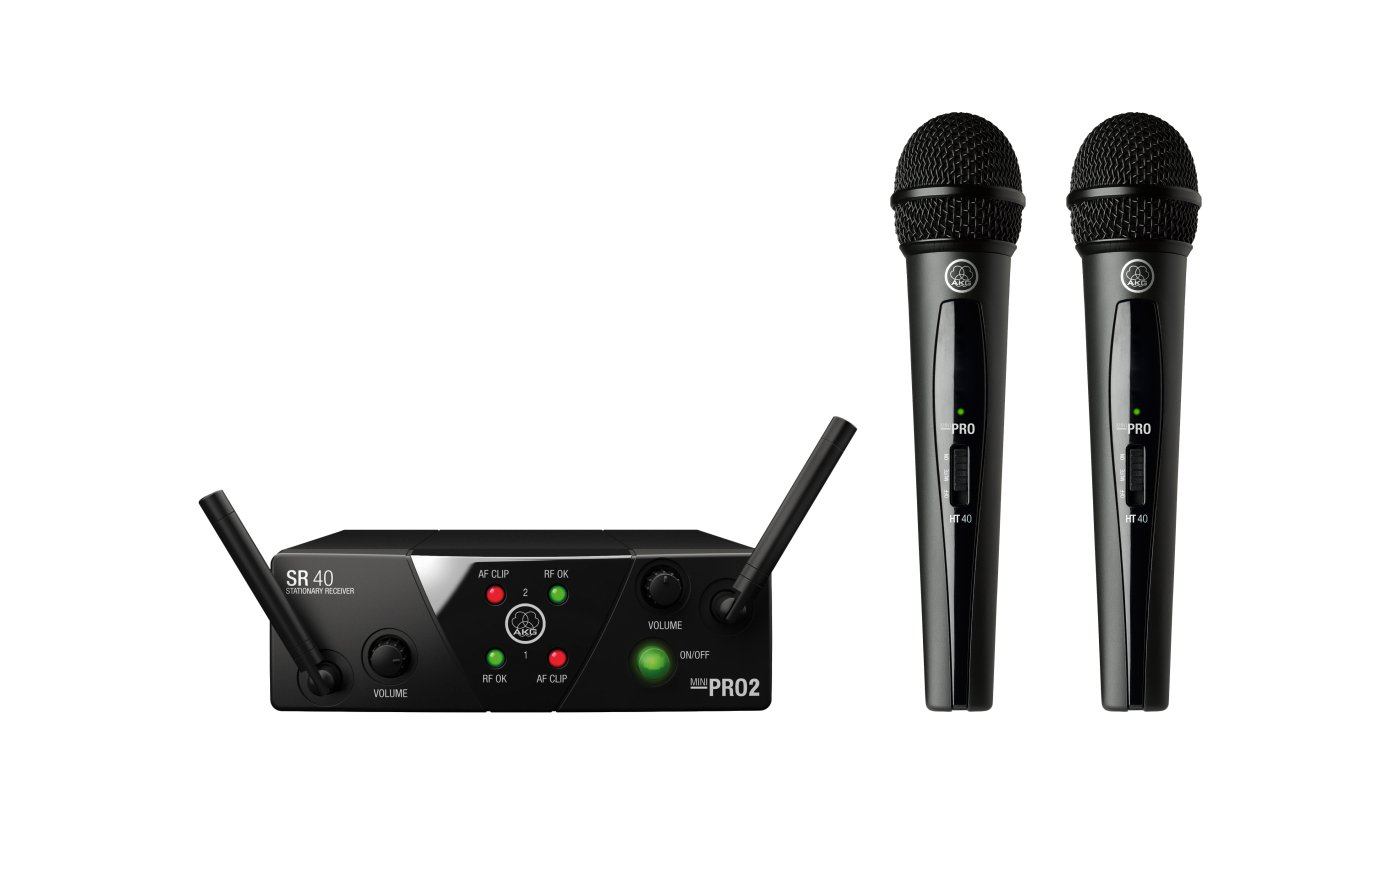 Dual Handheld Wireless Microphone System - AB Band